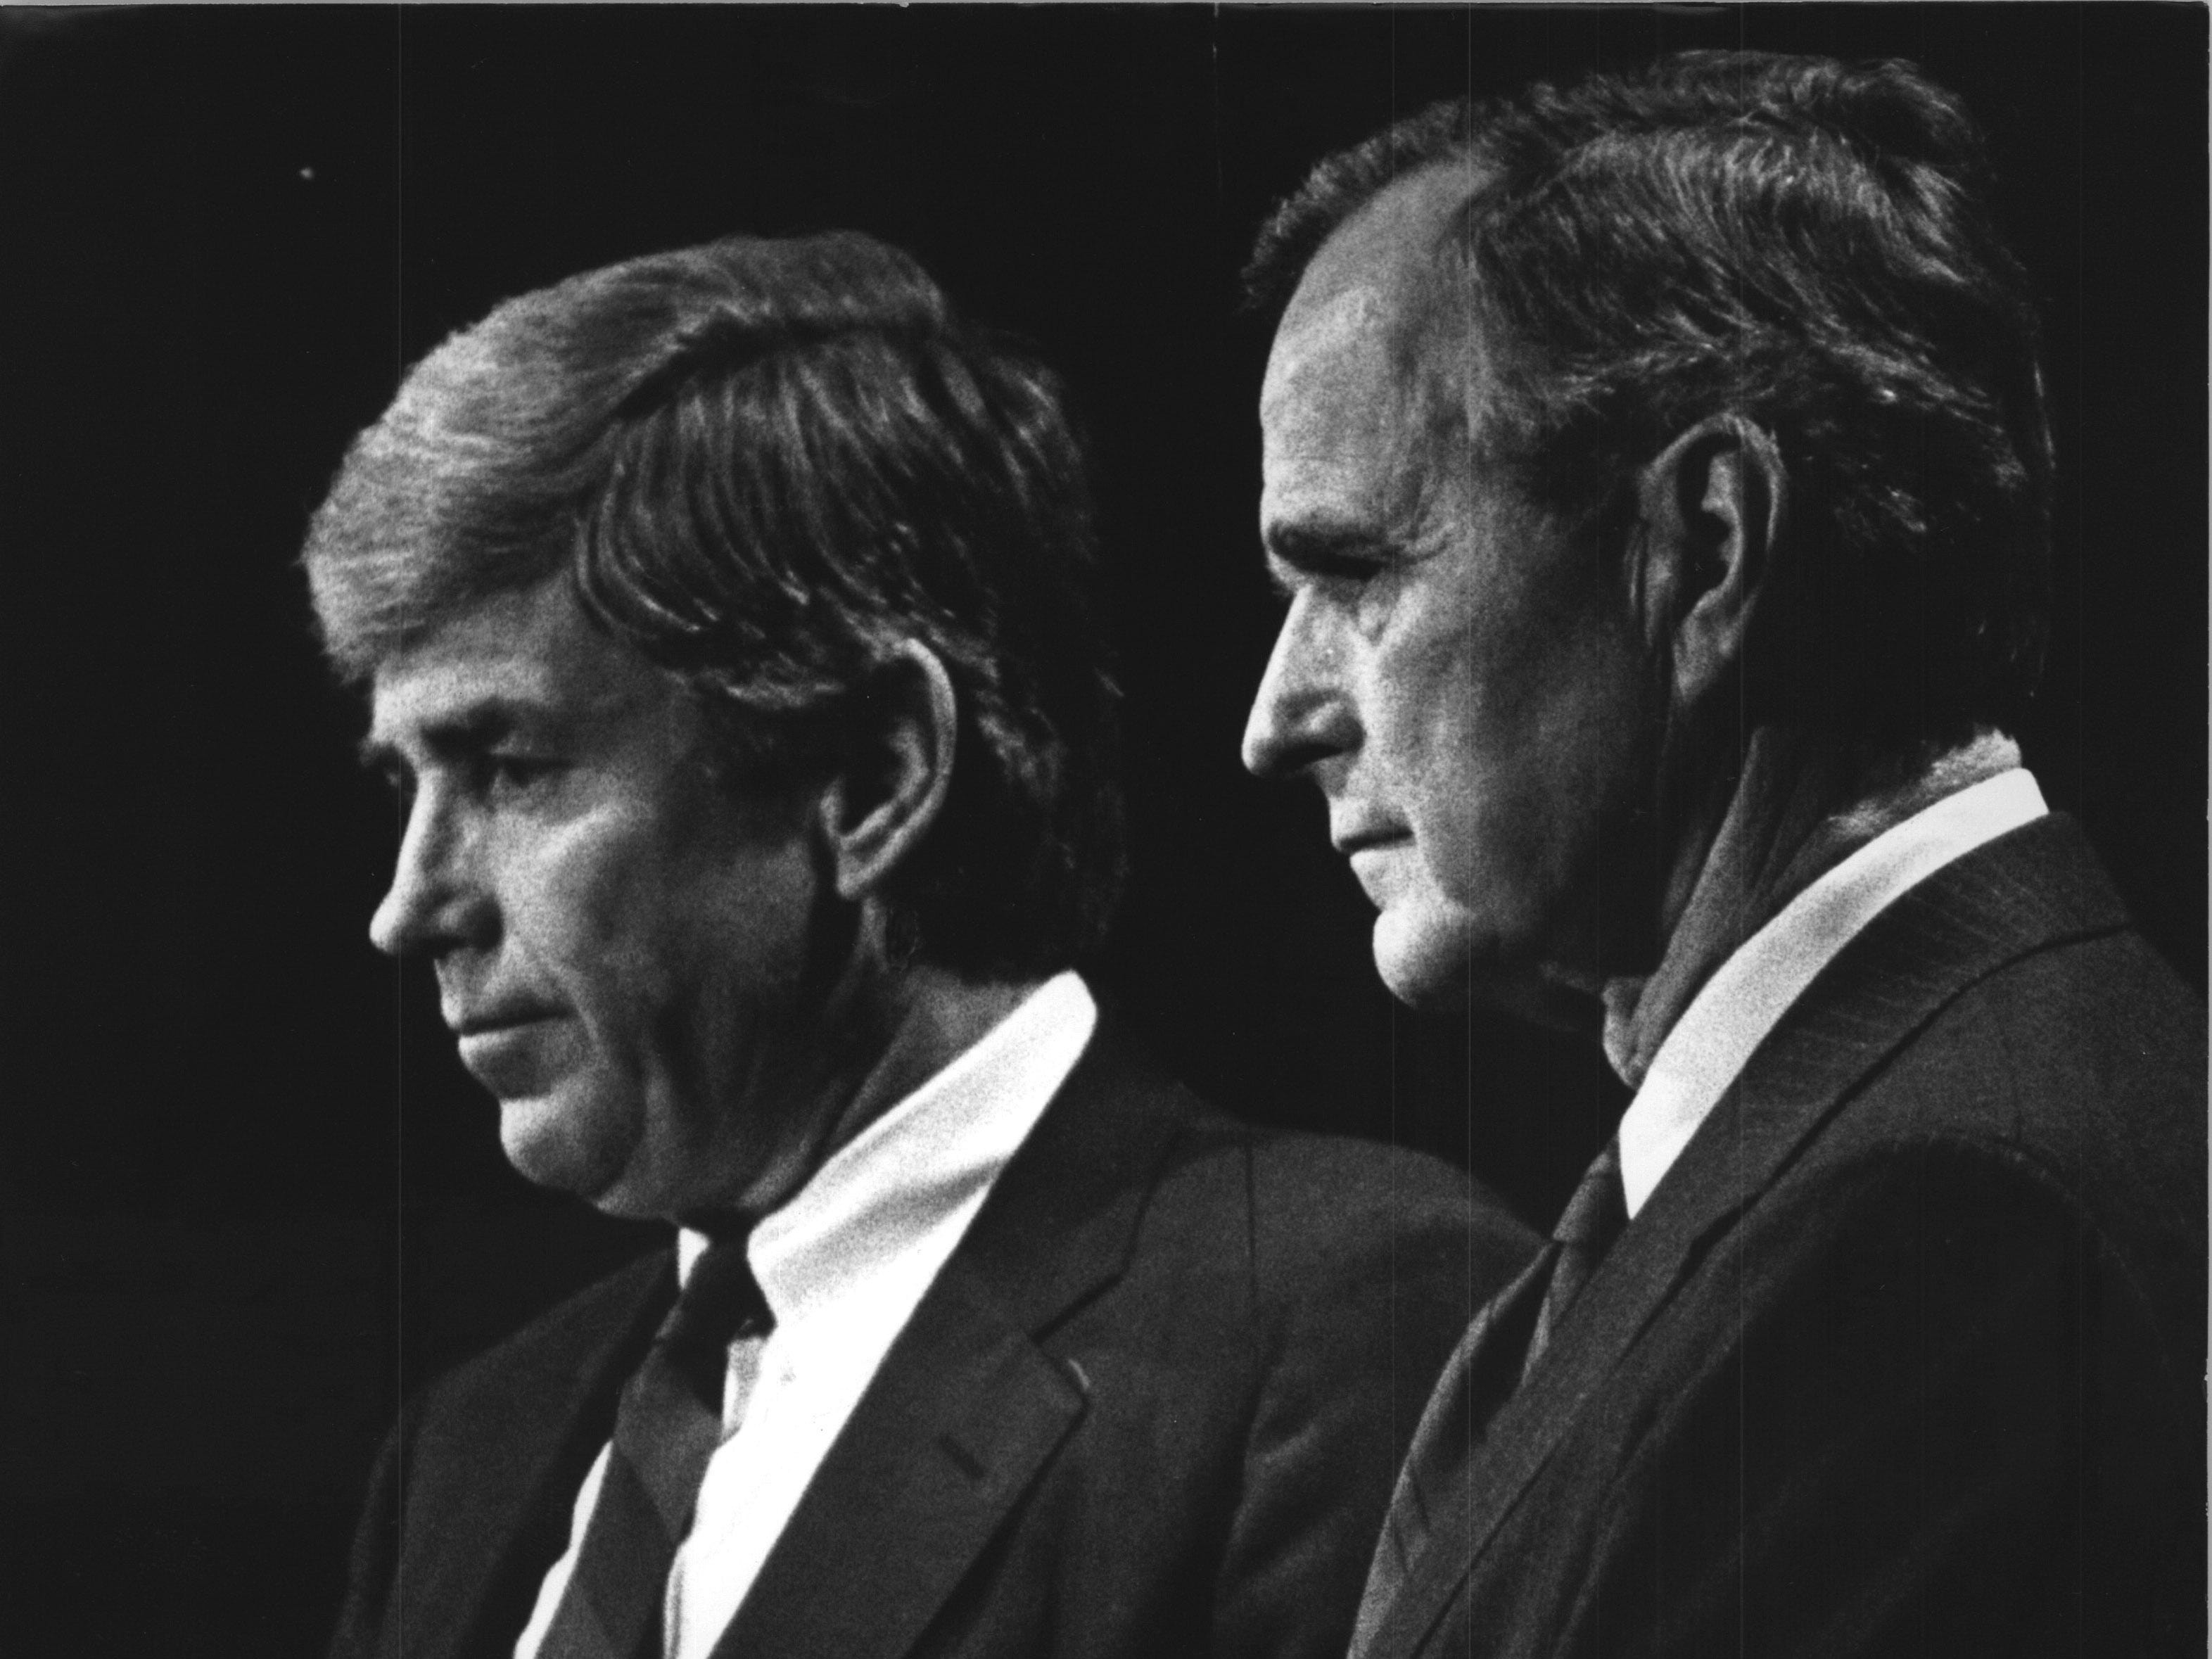 US Rep. Jack Kemp (left) endorses President George Bush at a news conference at the Pfister Hotel in 1988.